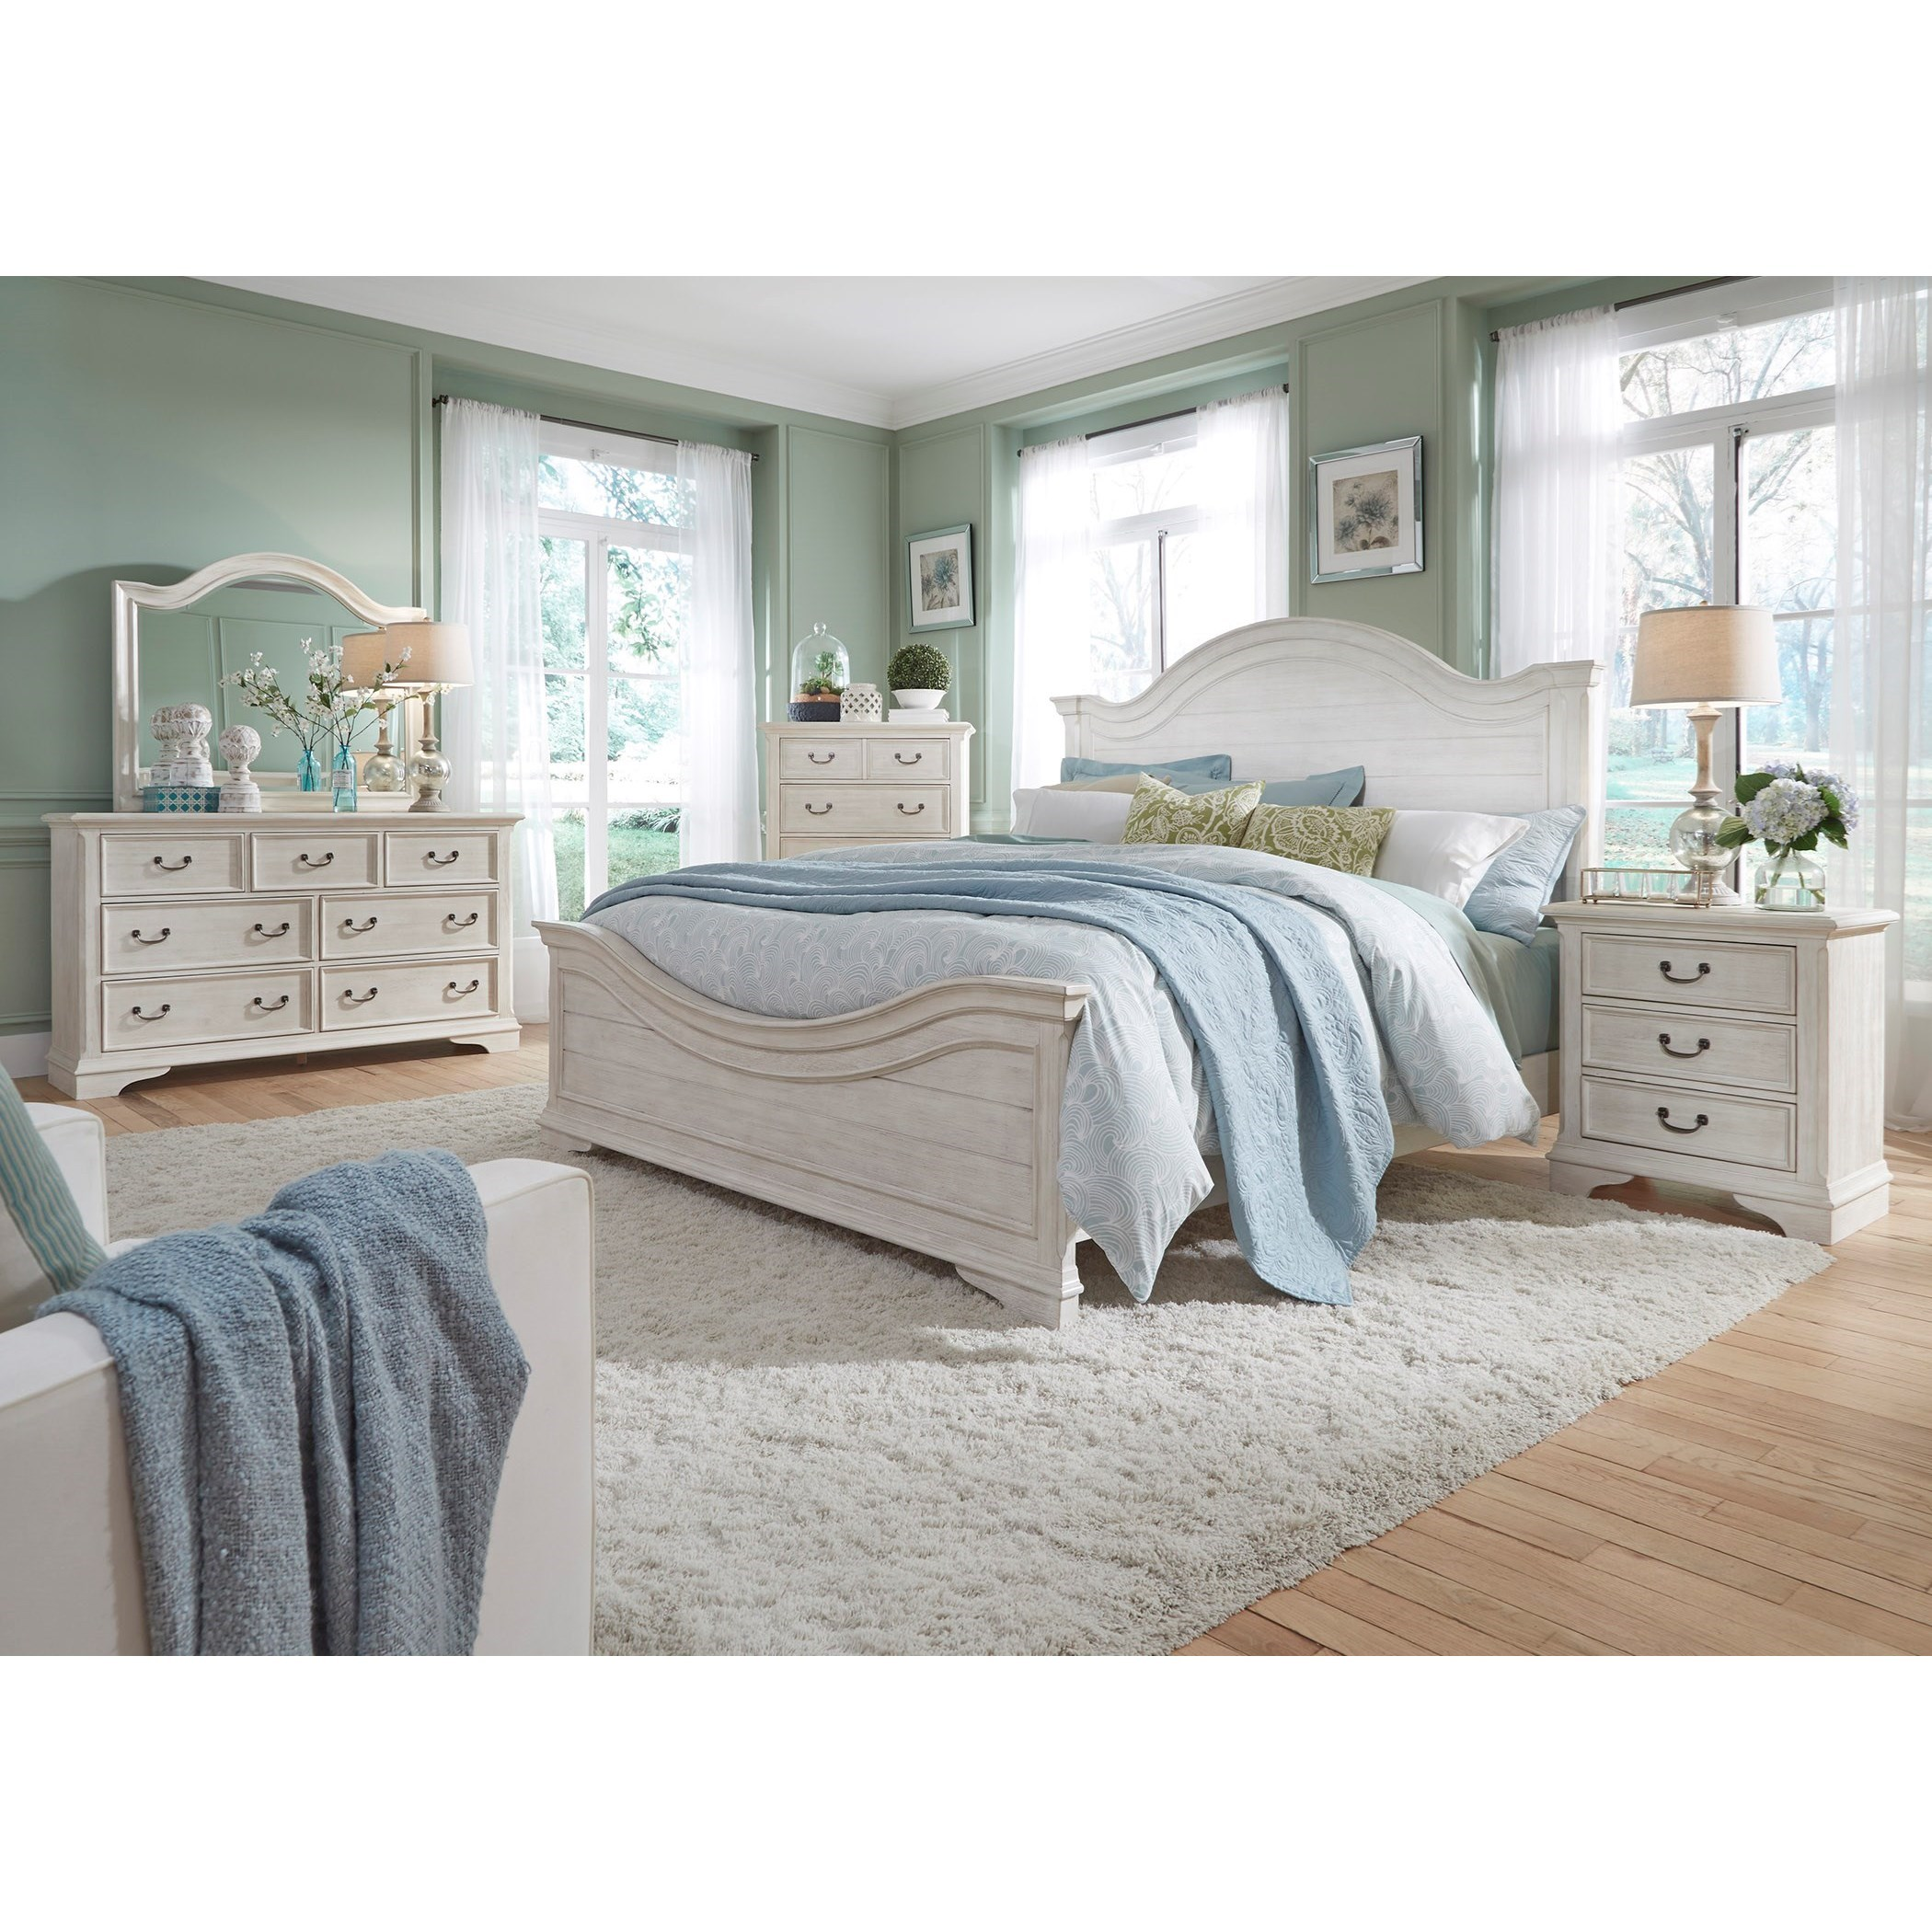 Bayside Bedroom Queen Bedroom Group by Liberty Furniture at SuperStore